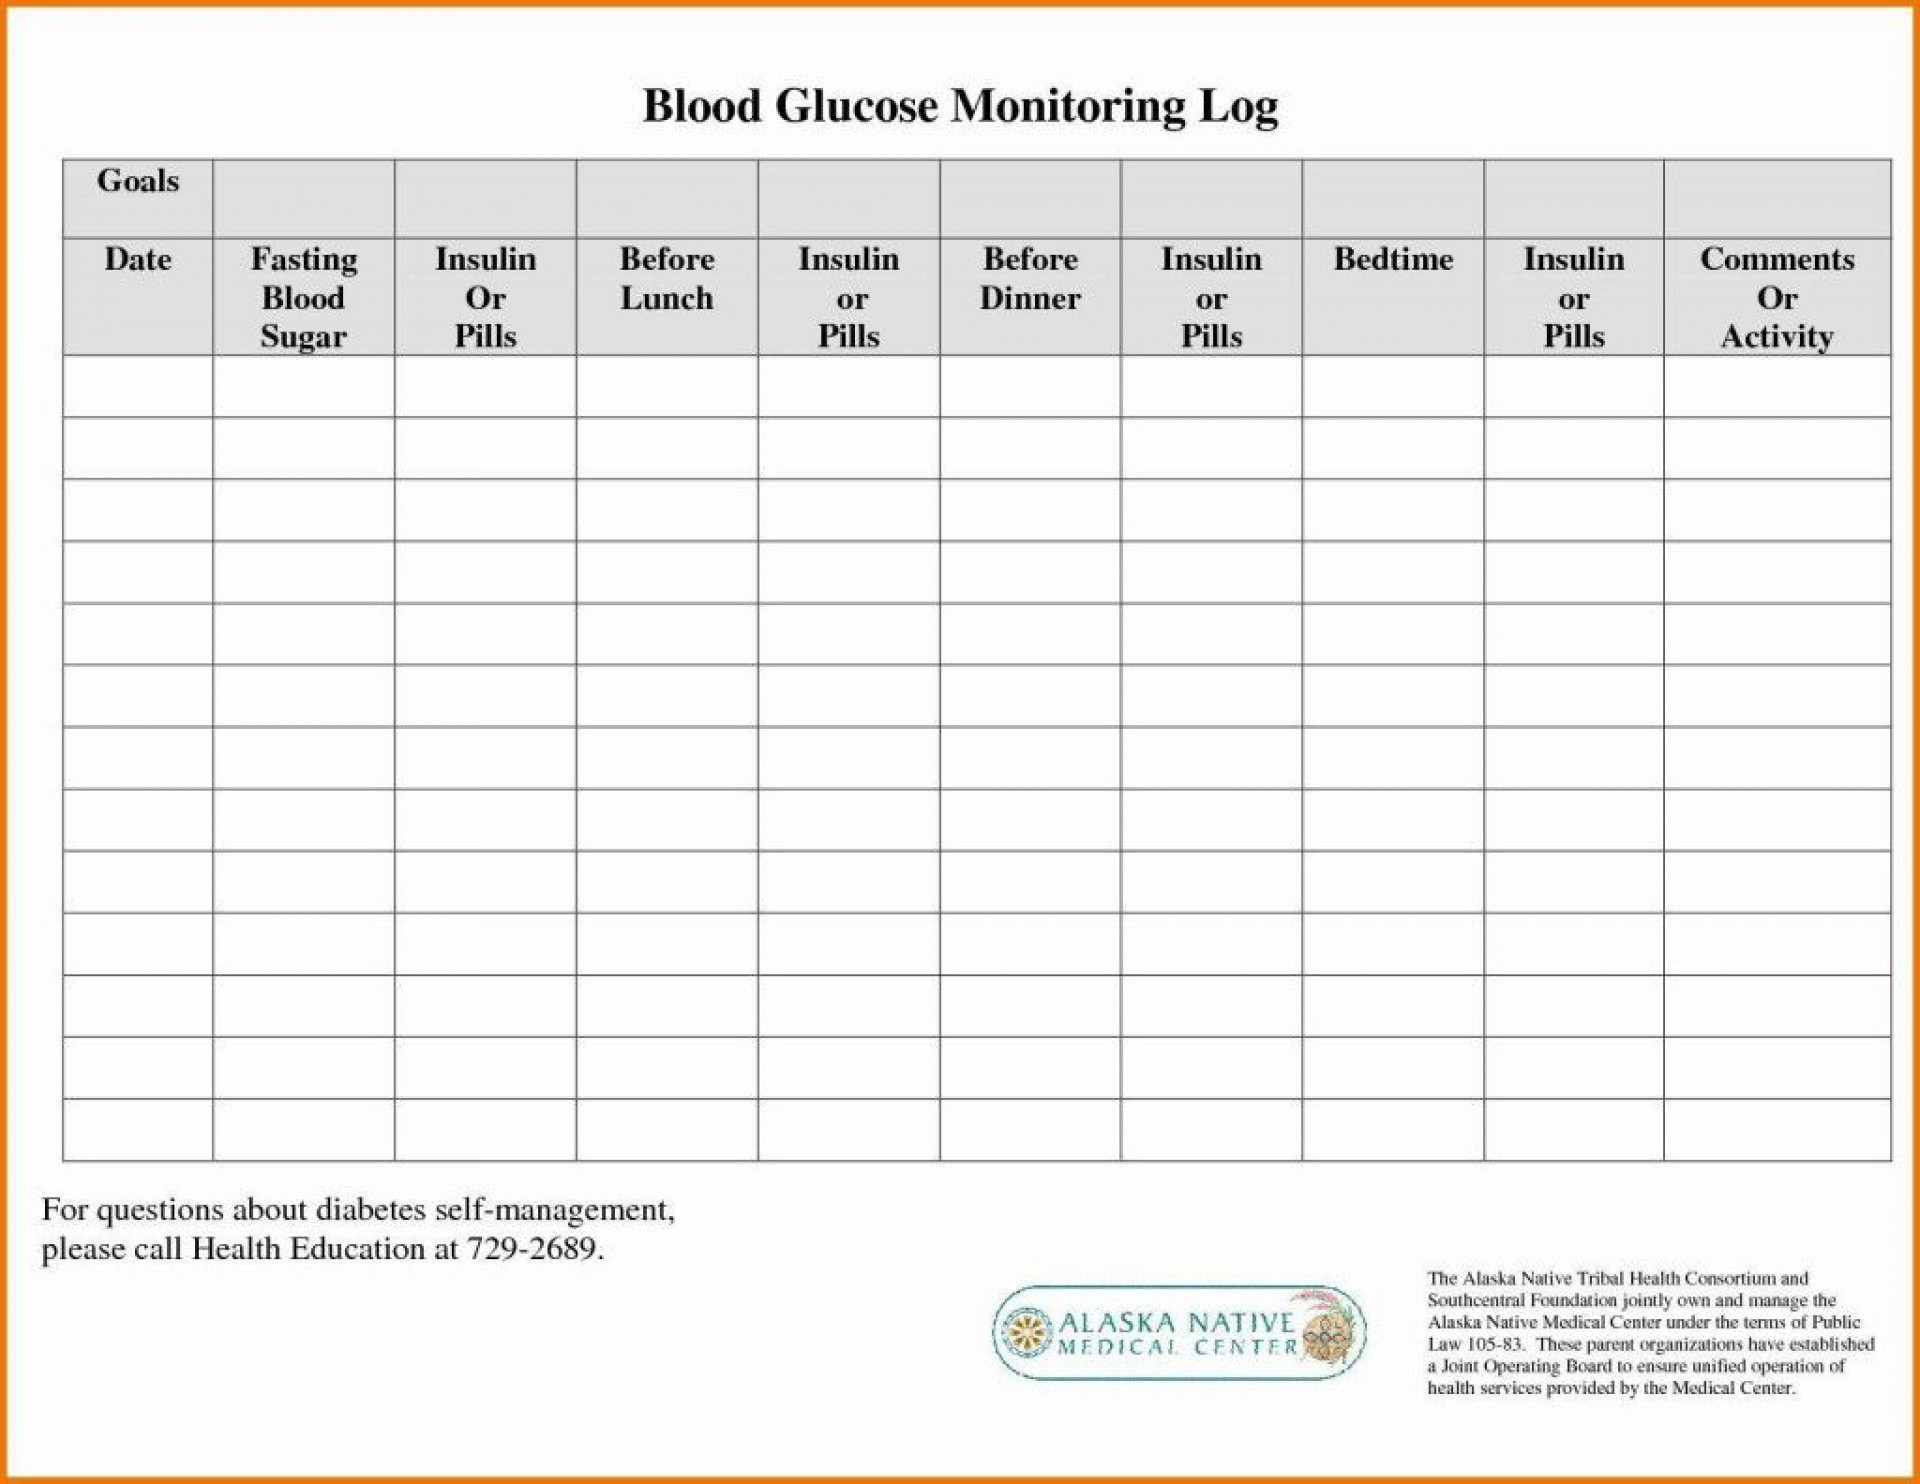 000 Remarkable Free Blood Sugar Log Template Pdf Image 1920